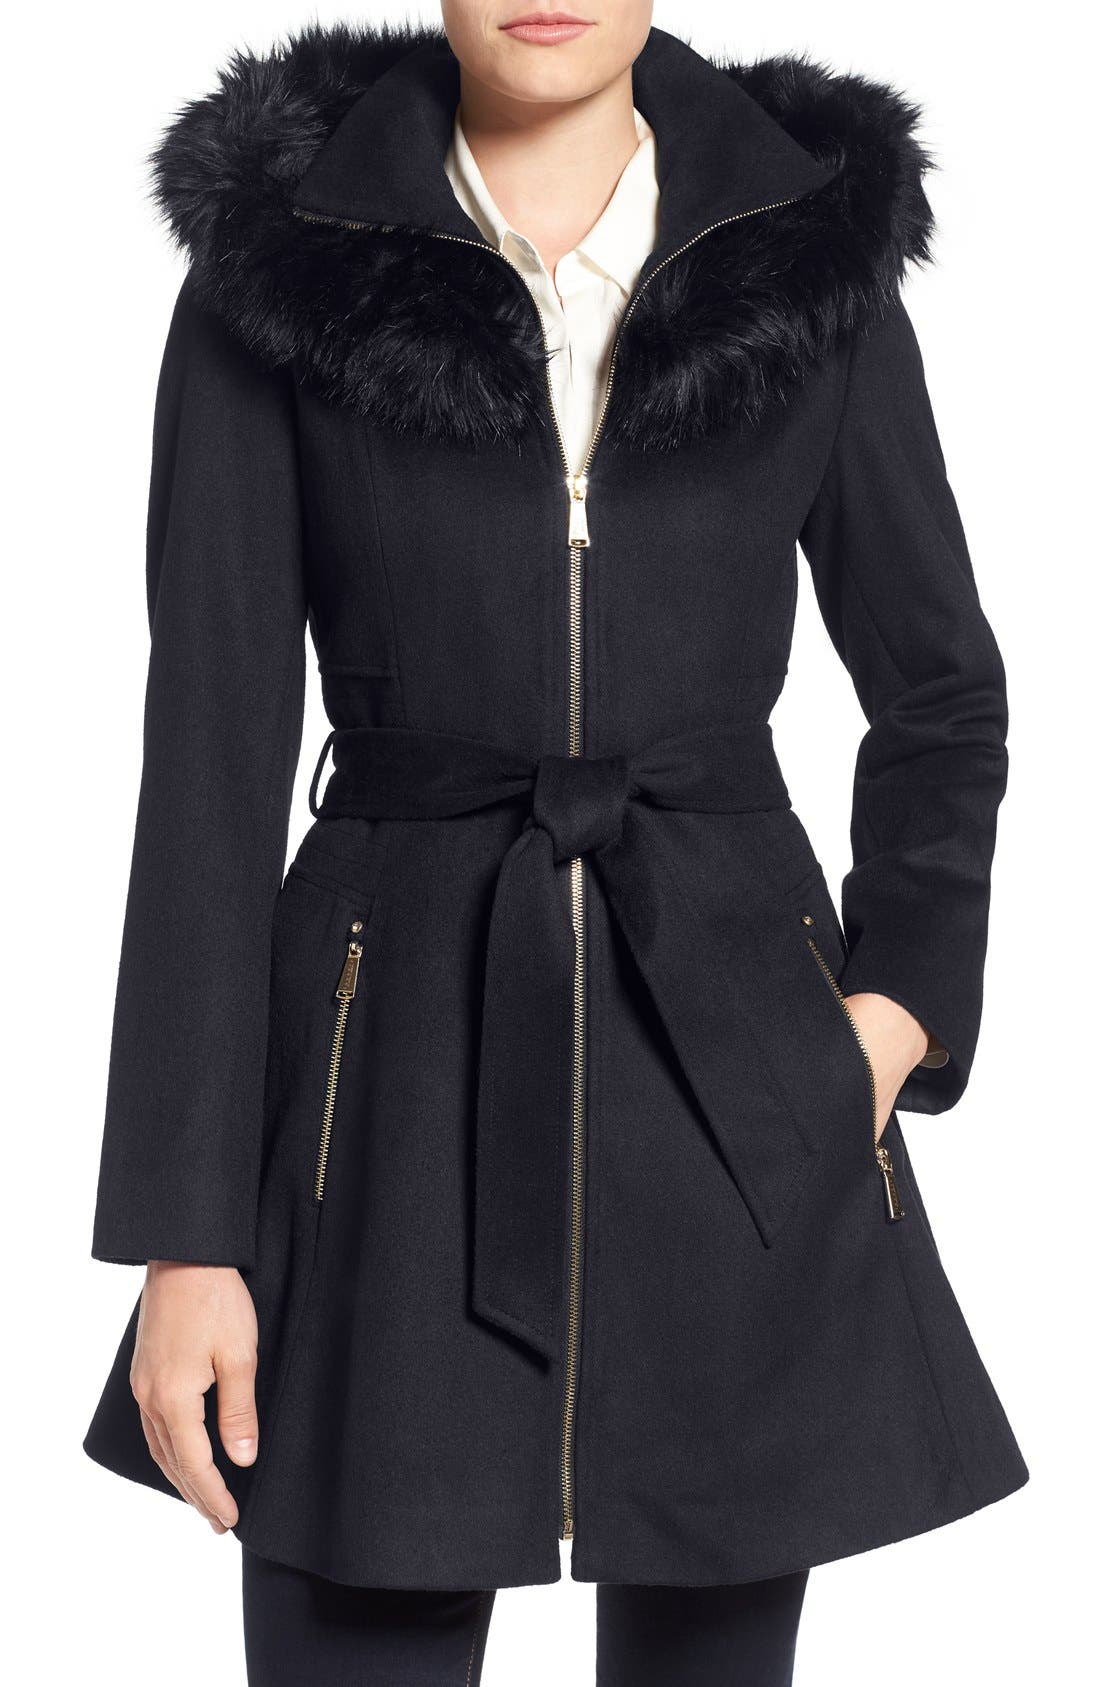 Alternate Image 1 Selected - Laundry by Shelly Segal Faux Fur Trim Wool Blend Fit & Flare Coat